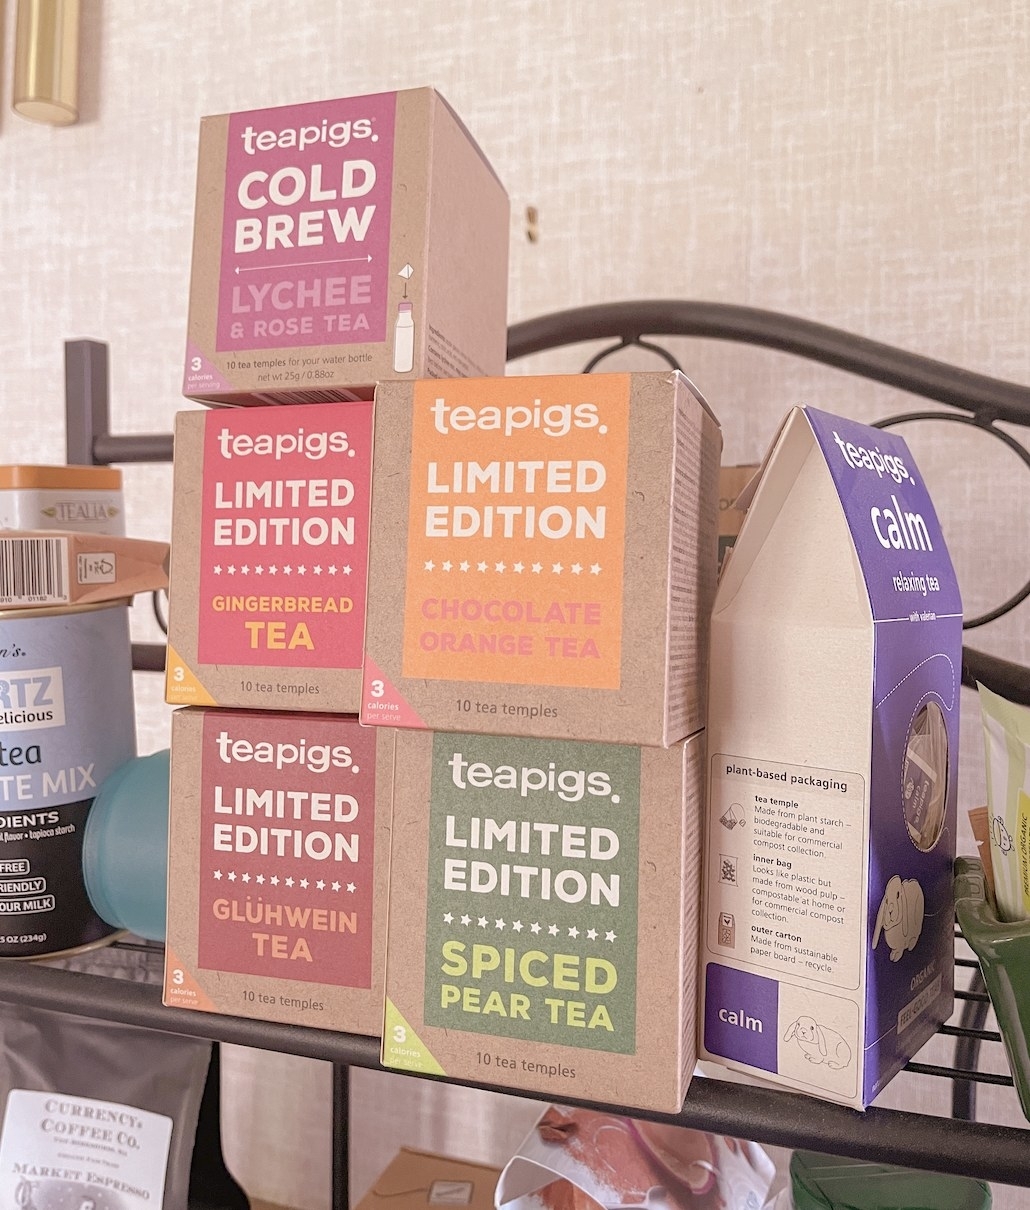 Boxes of different flavors of Teapigs tea